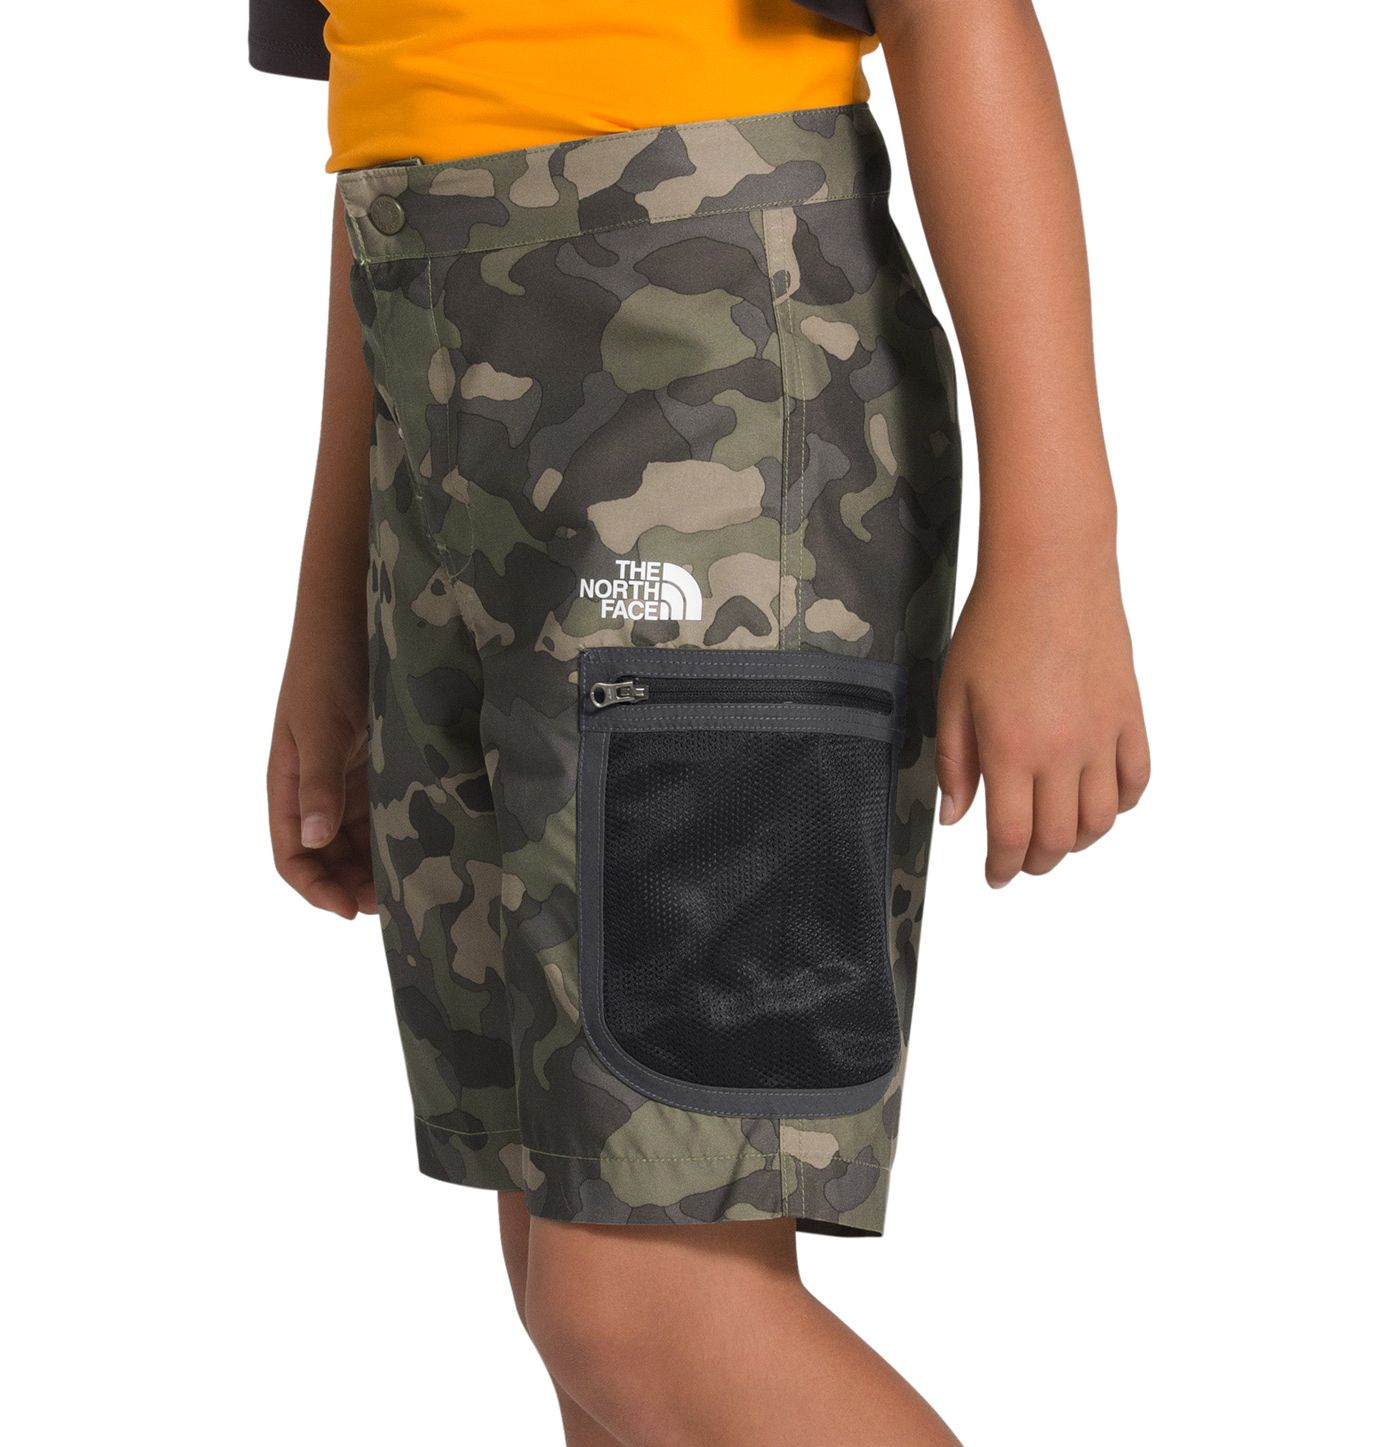 The North Face Boys' High Class V Water Shorts